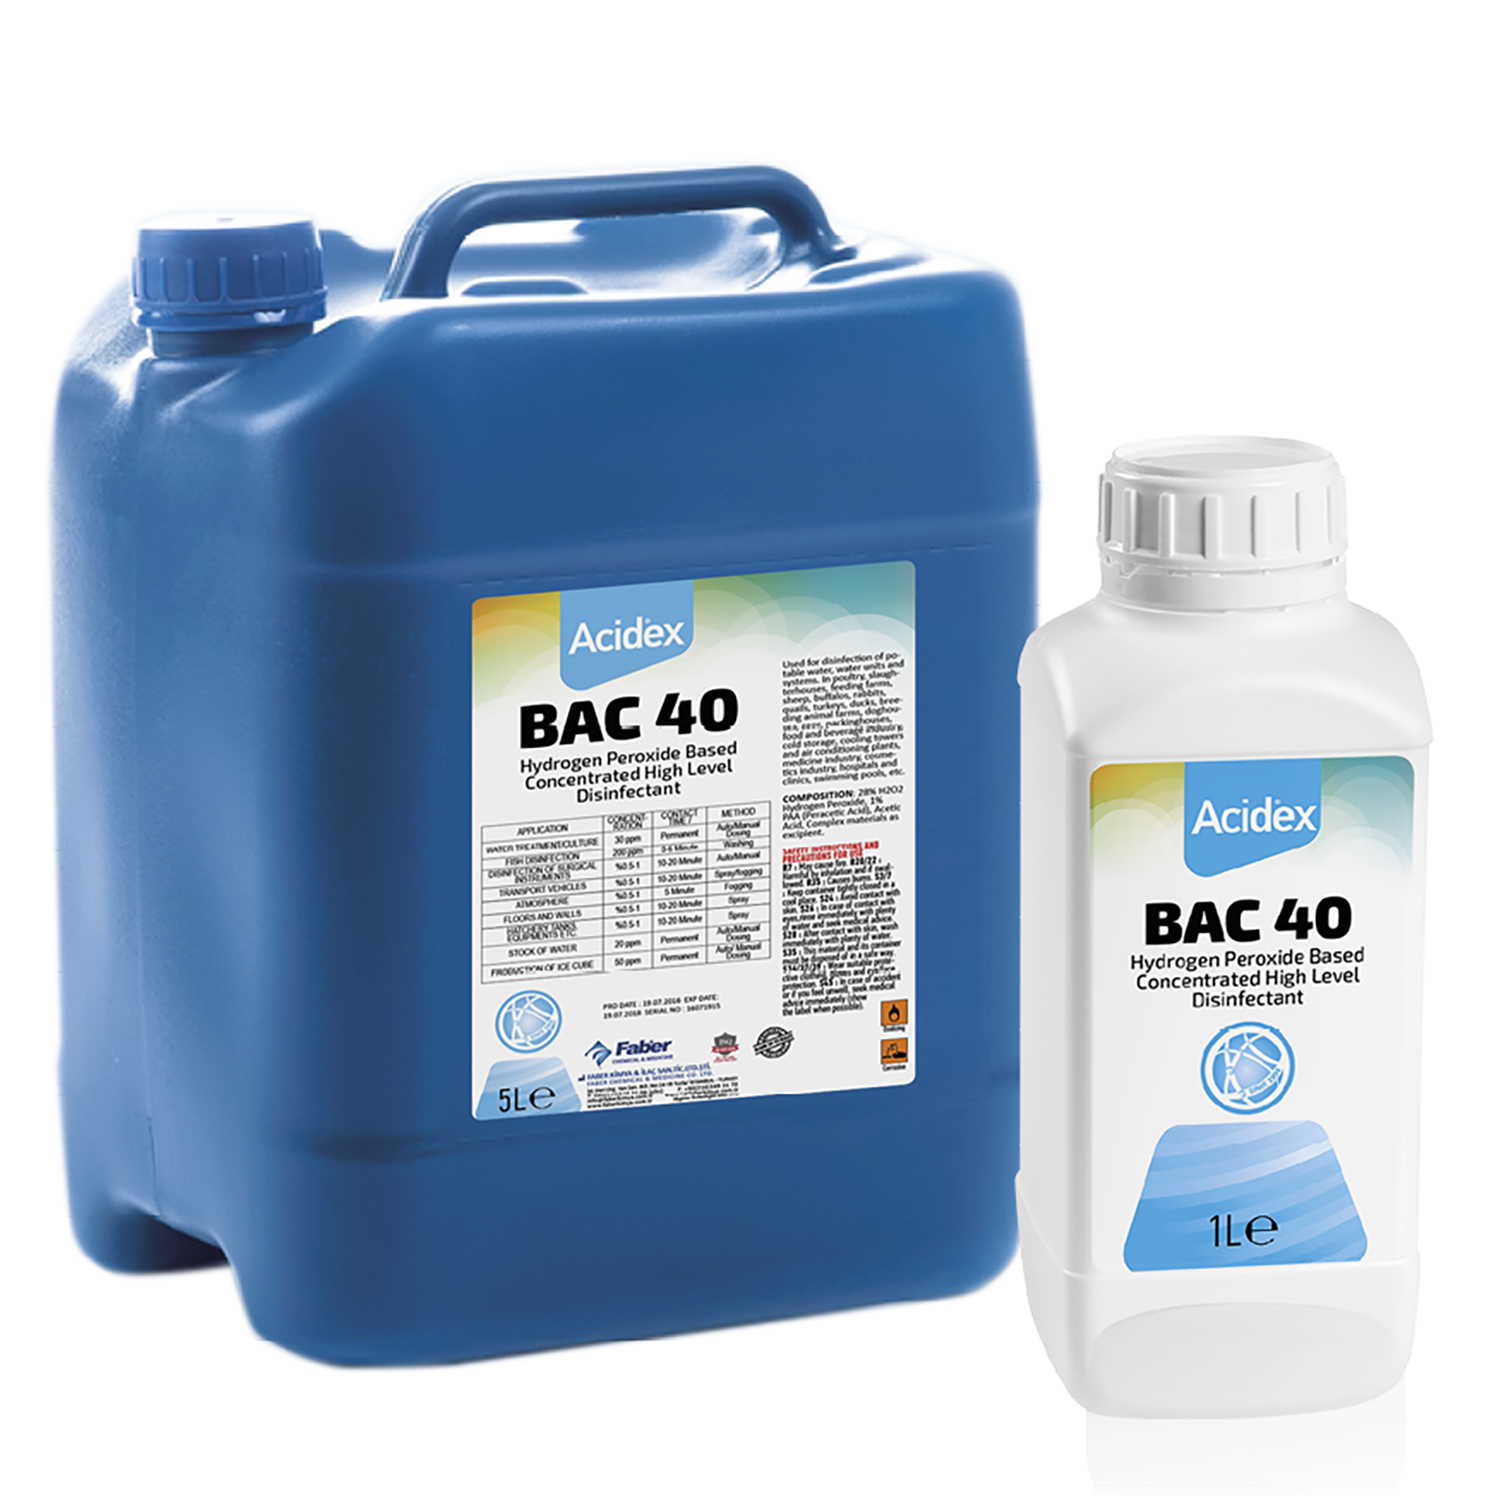 Acidex BAC 40